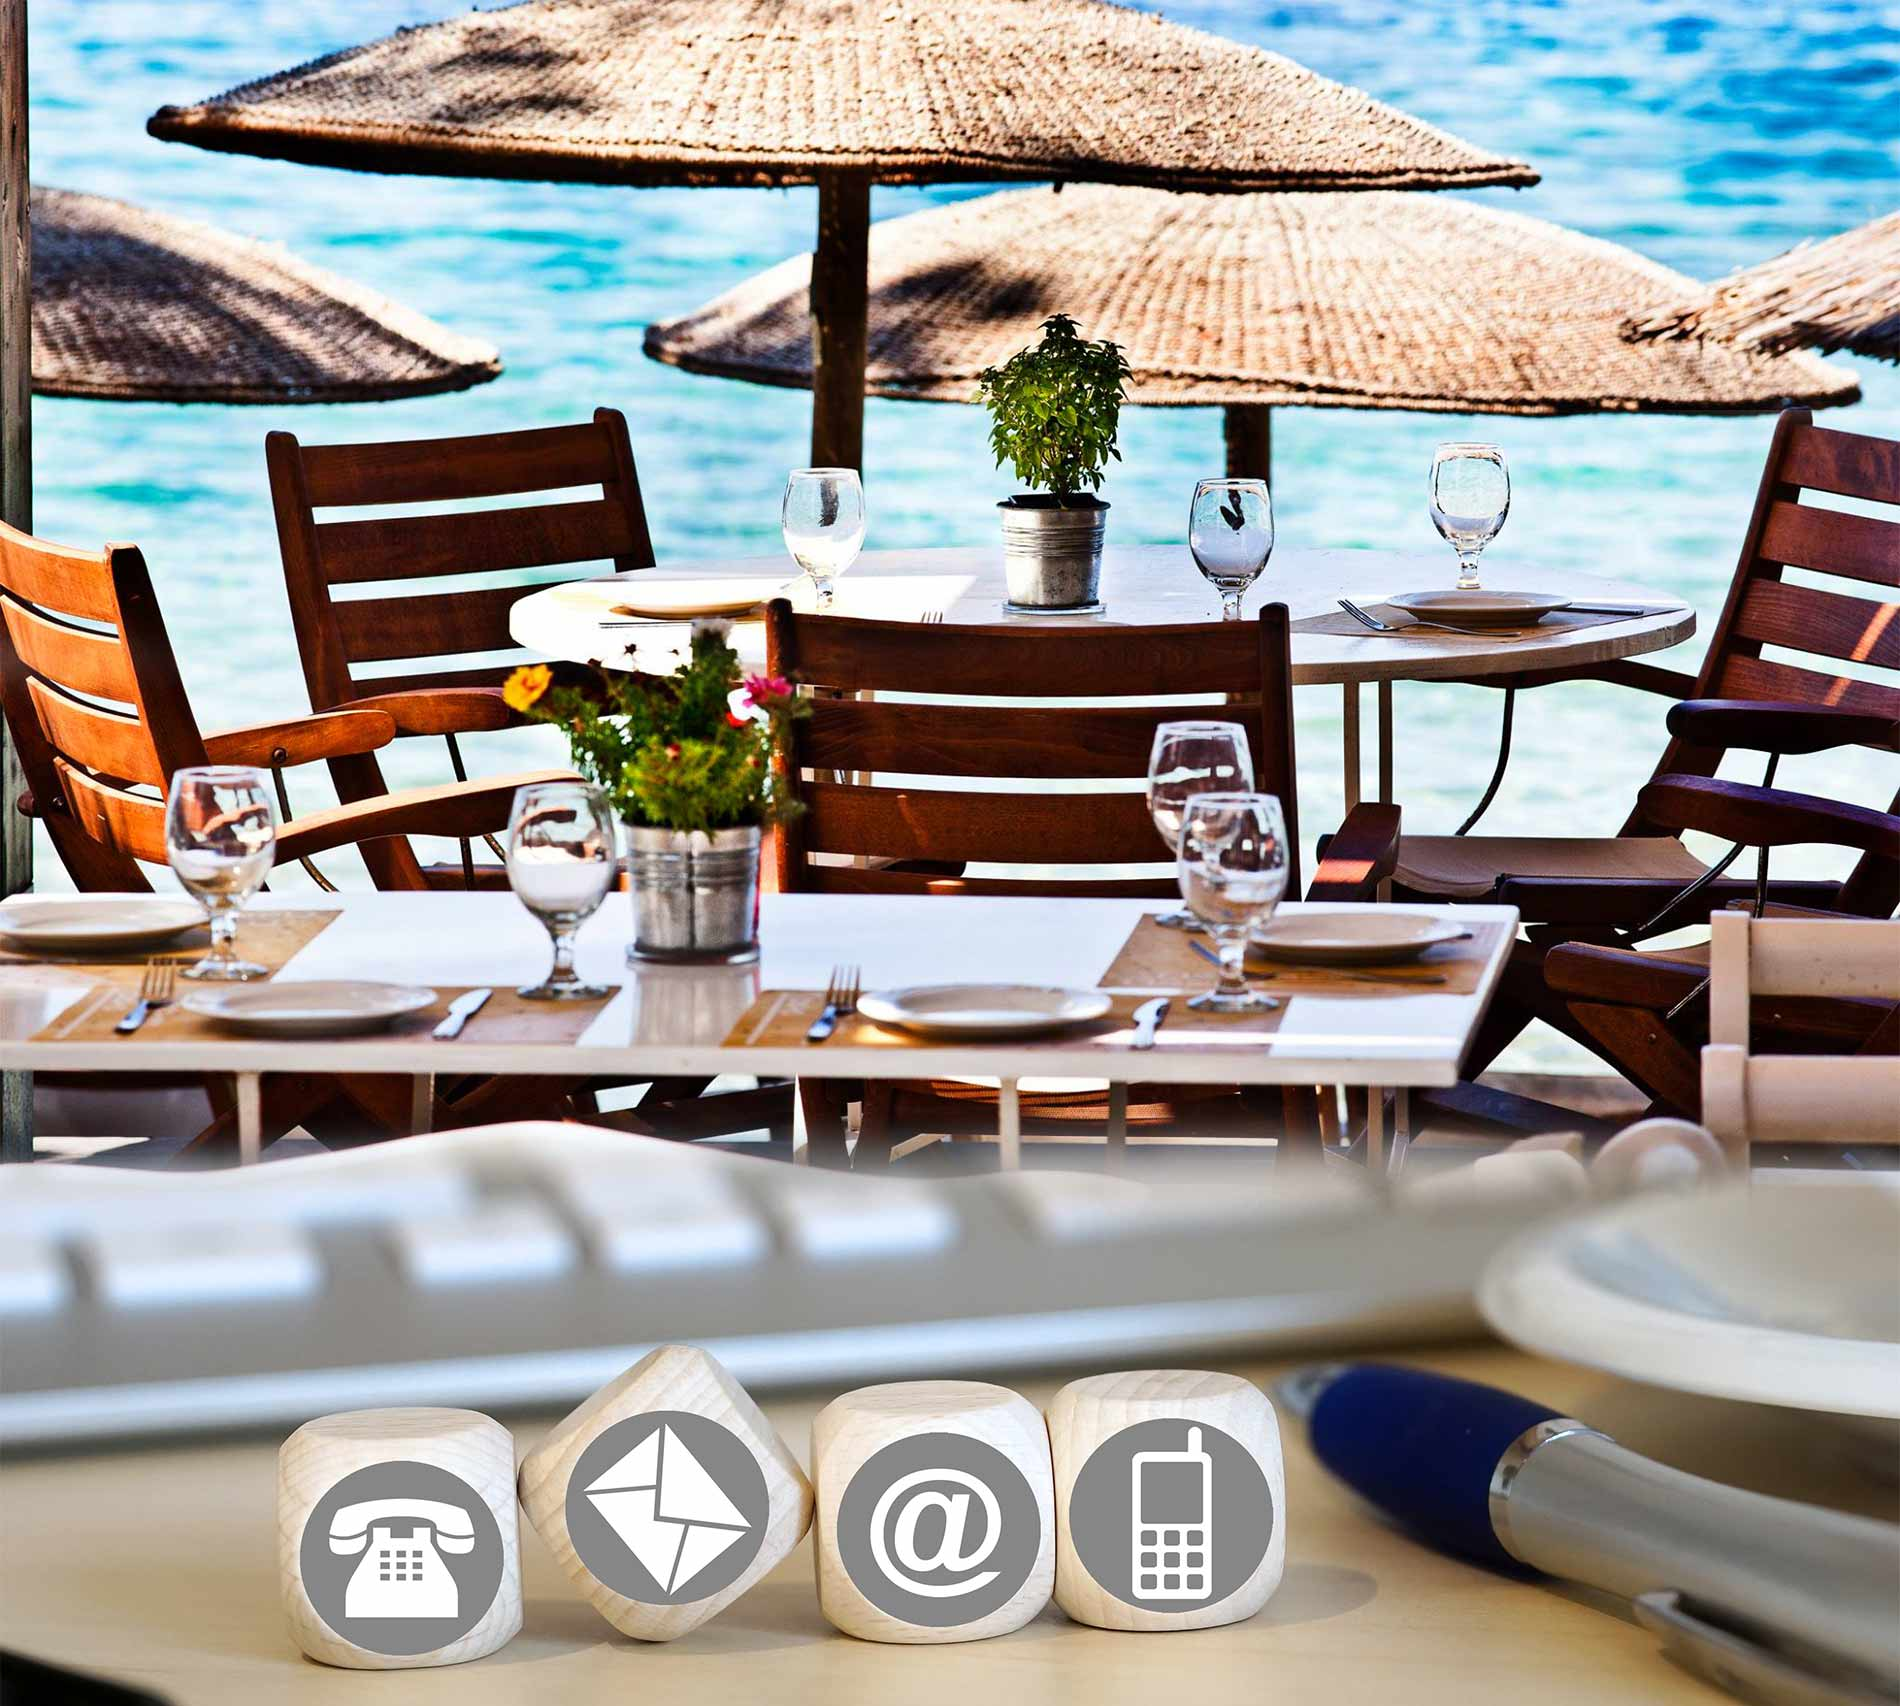 Great Beach Bar and Restaurant.... by Nico in Trip Advisor